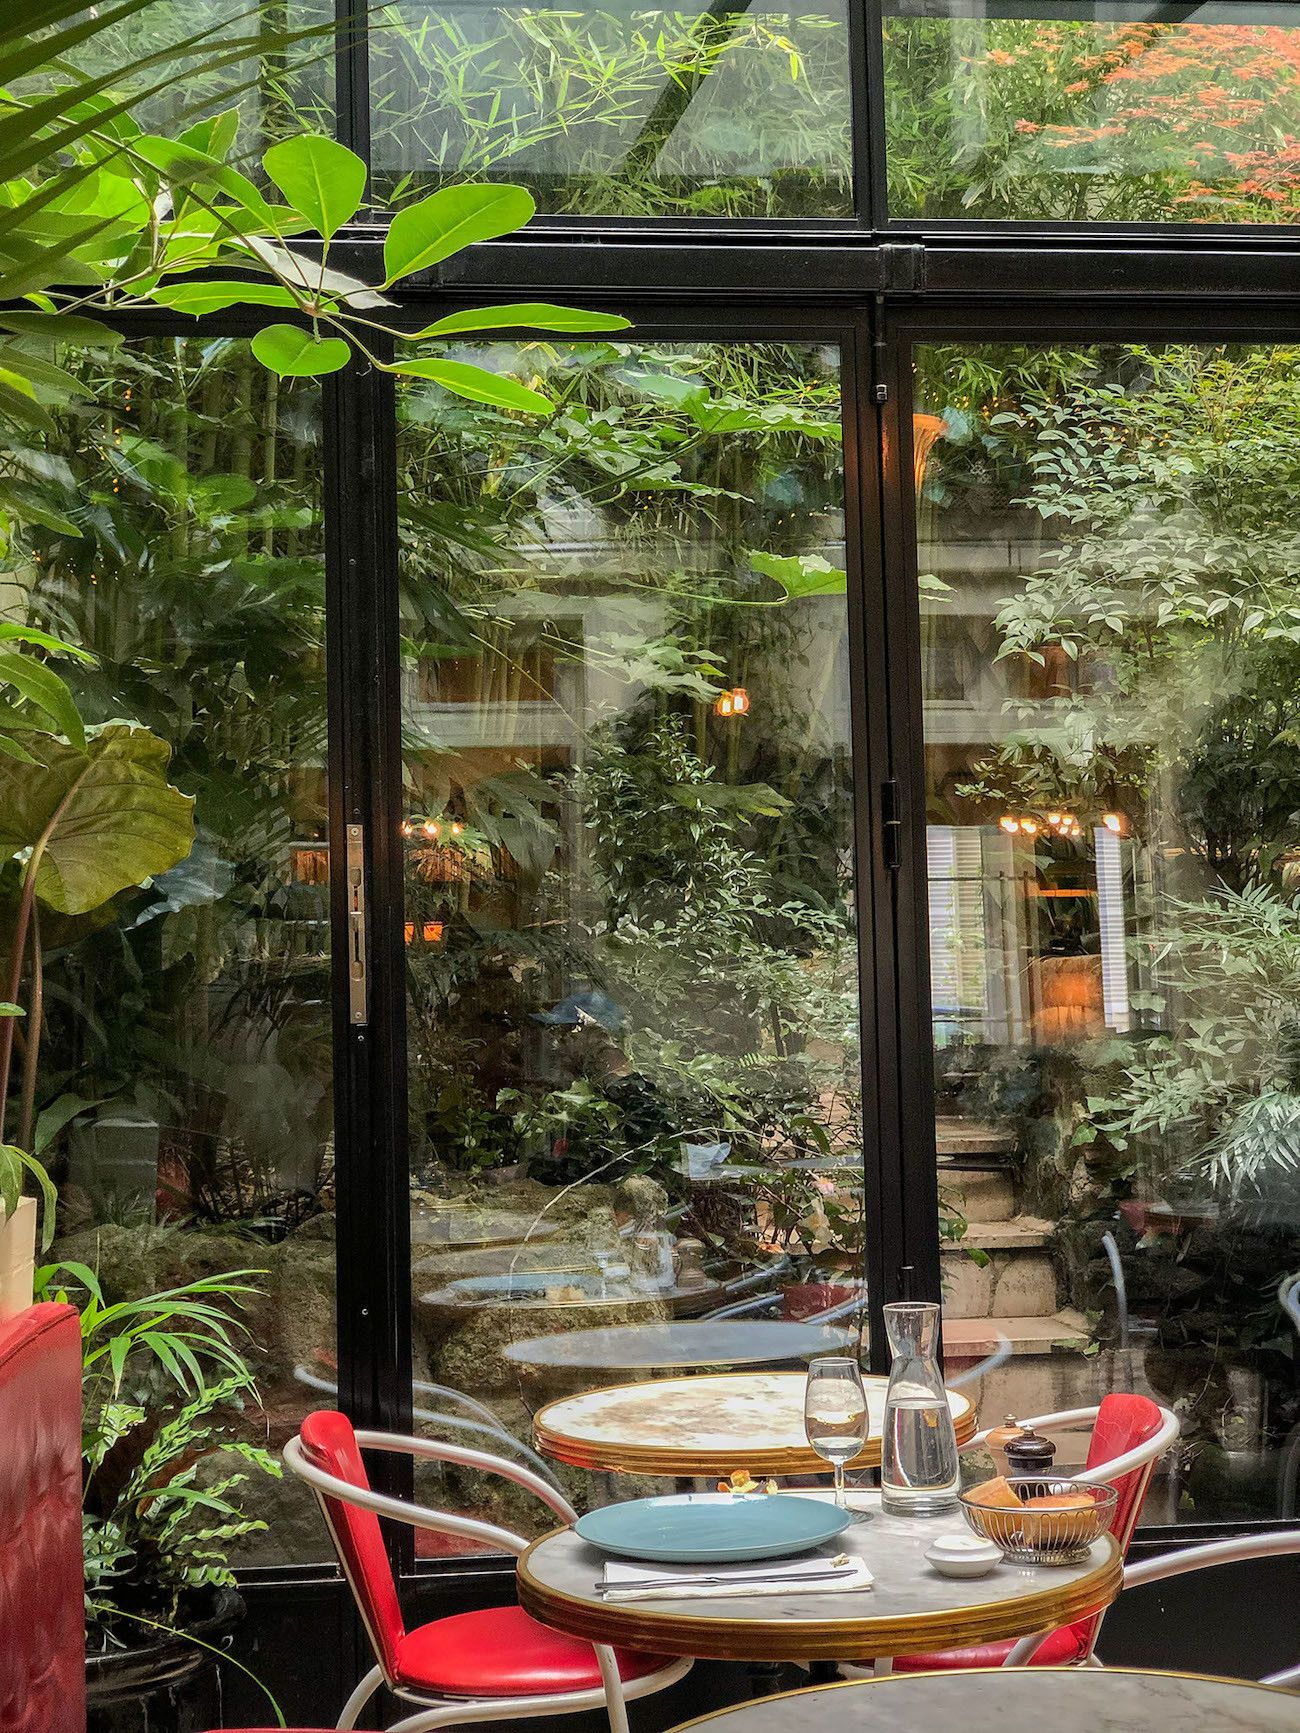 Foodblog About Fuel, Paris, Hotel Amour, Wintergarten